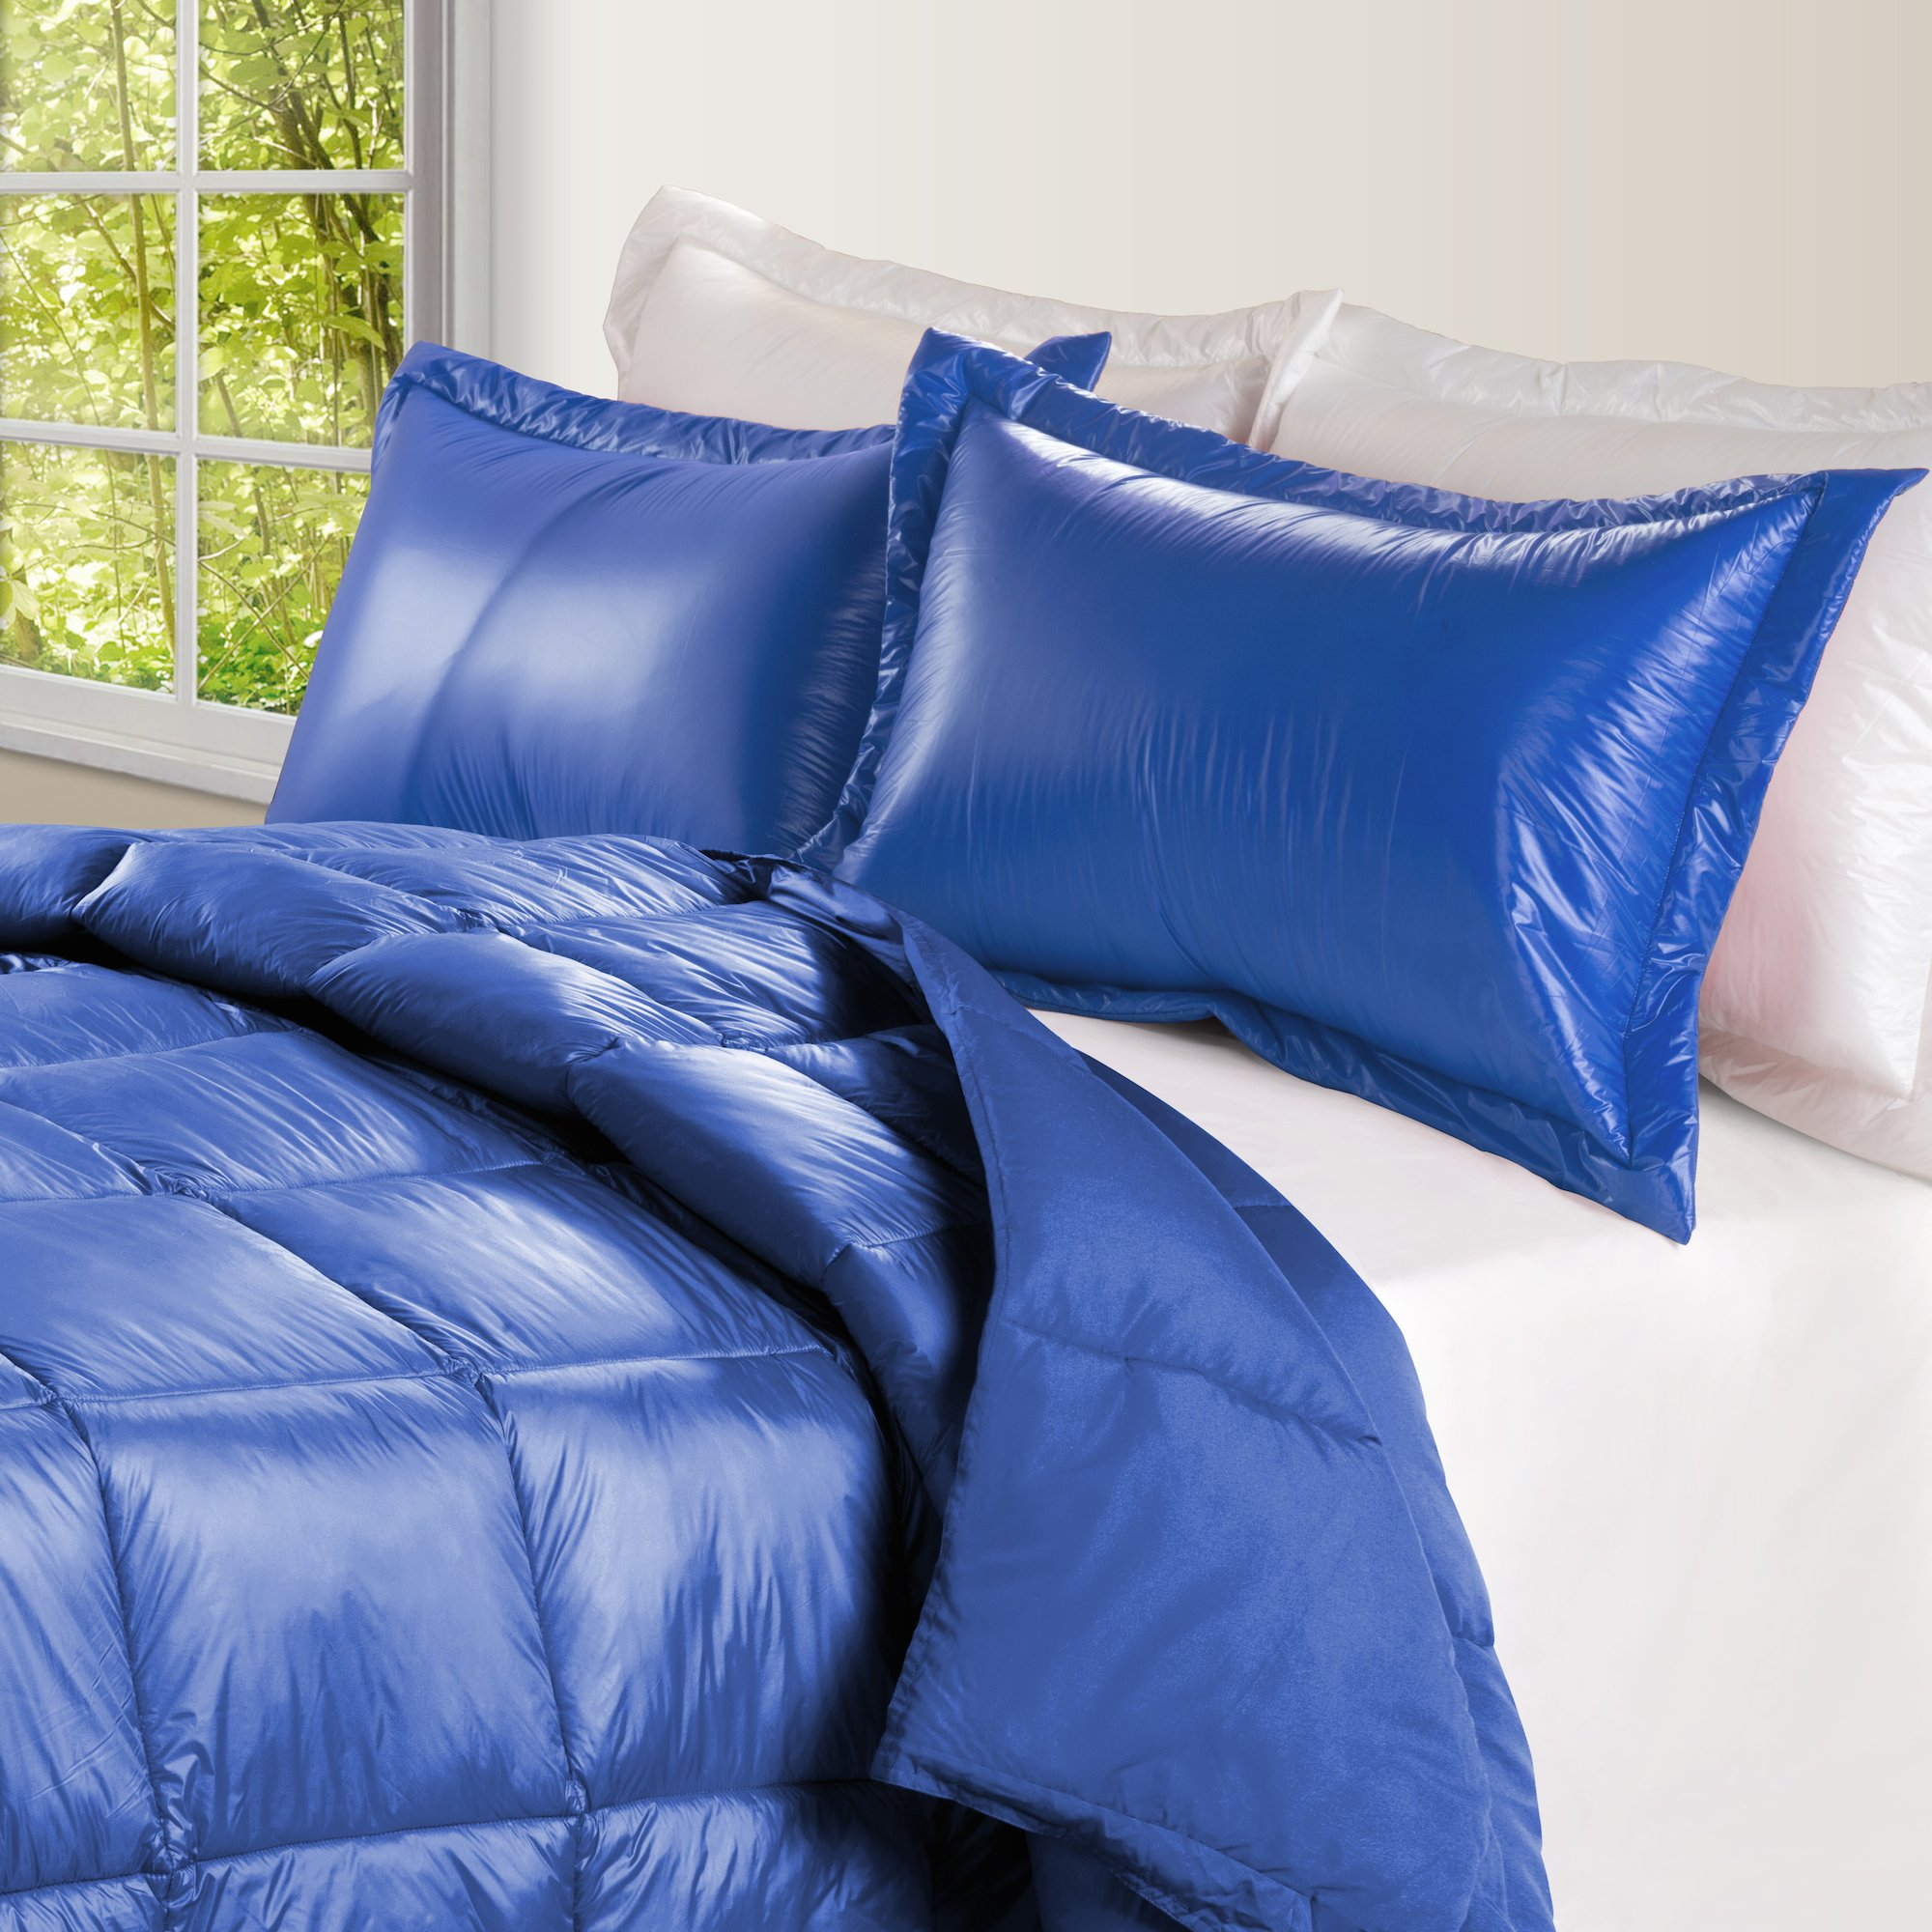 PUFF High Loft Down Indoor/Outdoor Water Resistant Comforter with Extra Strong Nylon Cover, King, Electric Blue